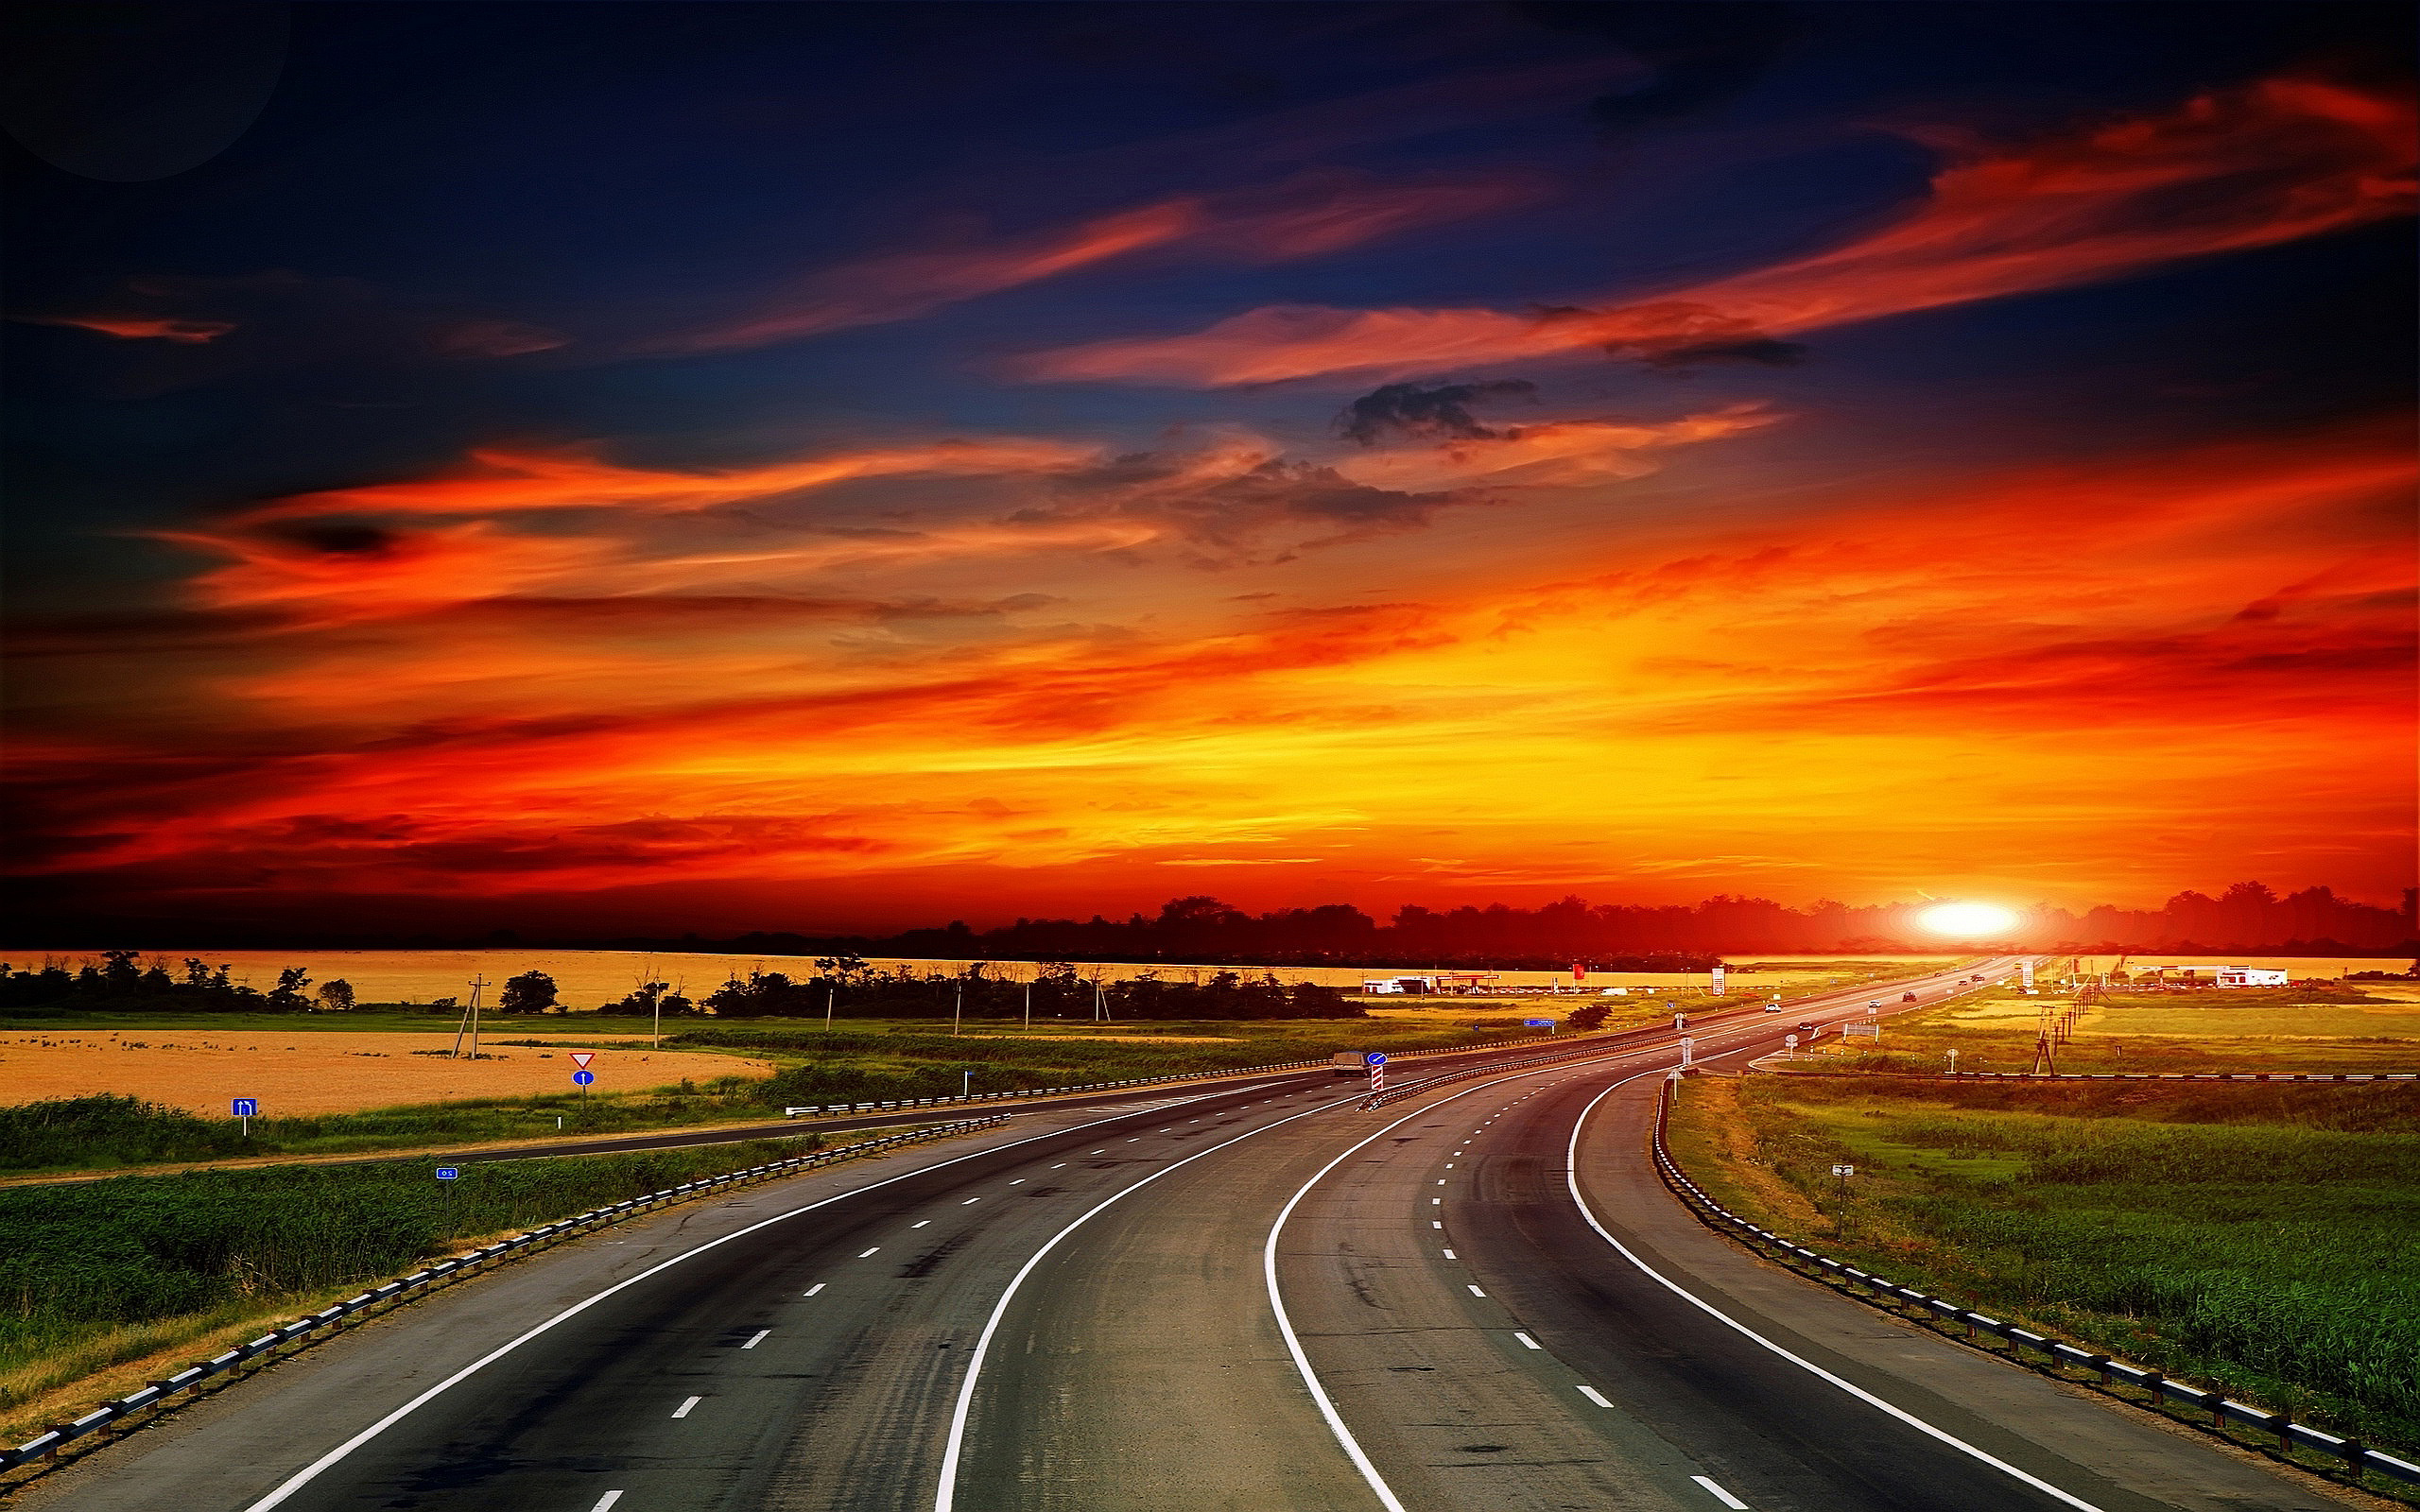 Freeway clipart roadway #6895868 Backgrounds Highway Sunset Highway